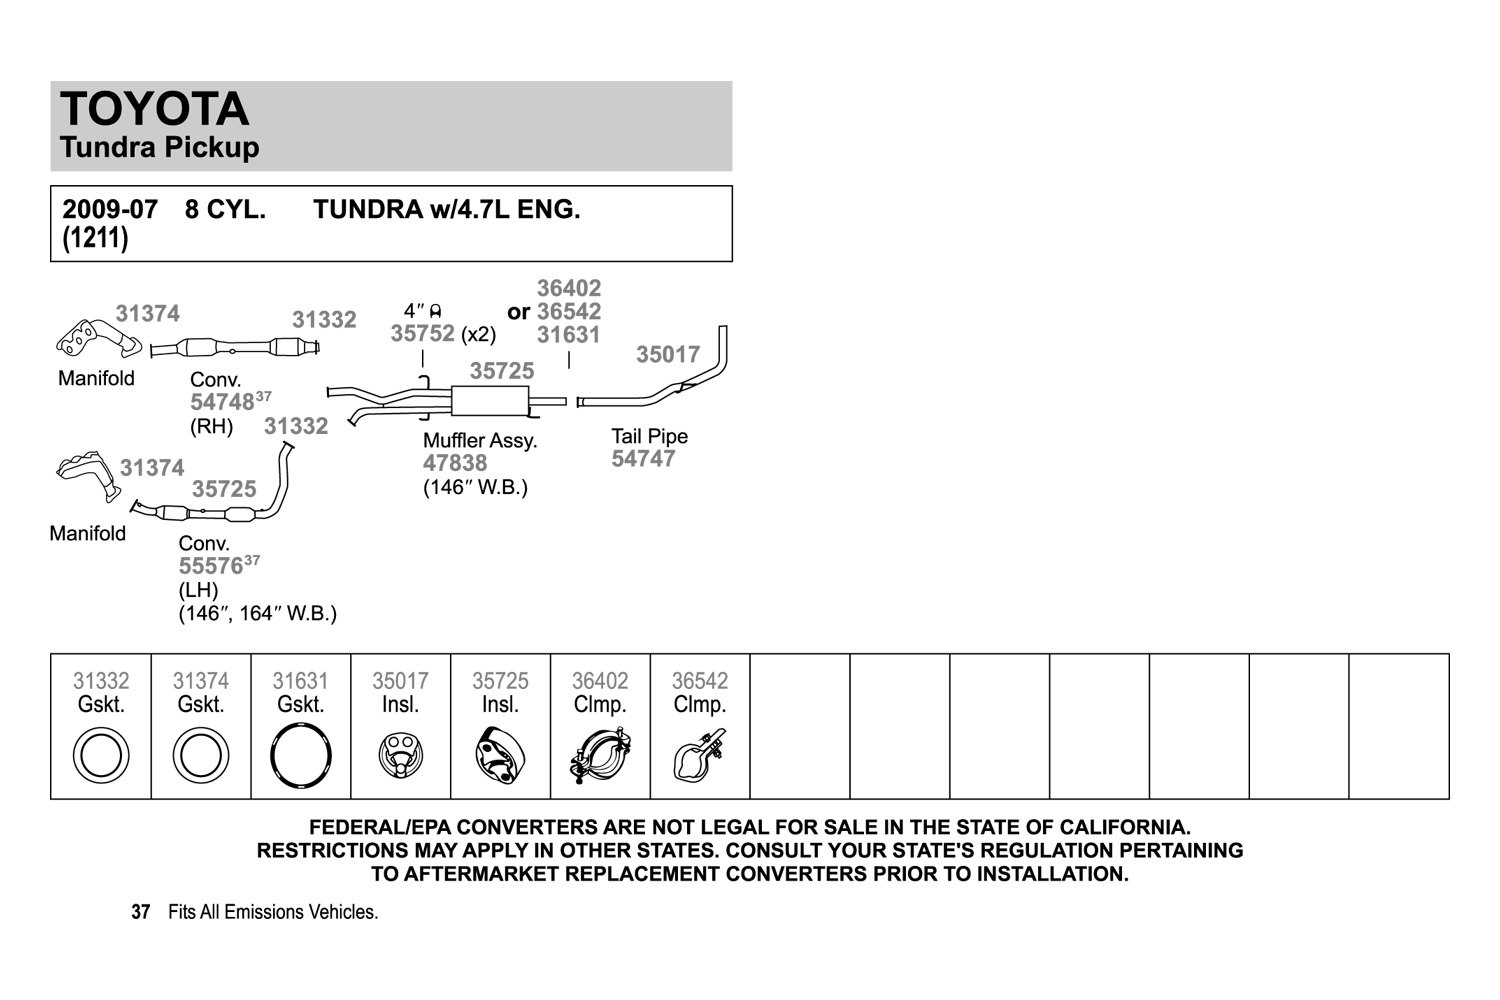 2002 toyota celica wiring diagram gy6 150cc harness exhaust parts circuit symbols